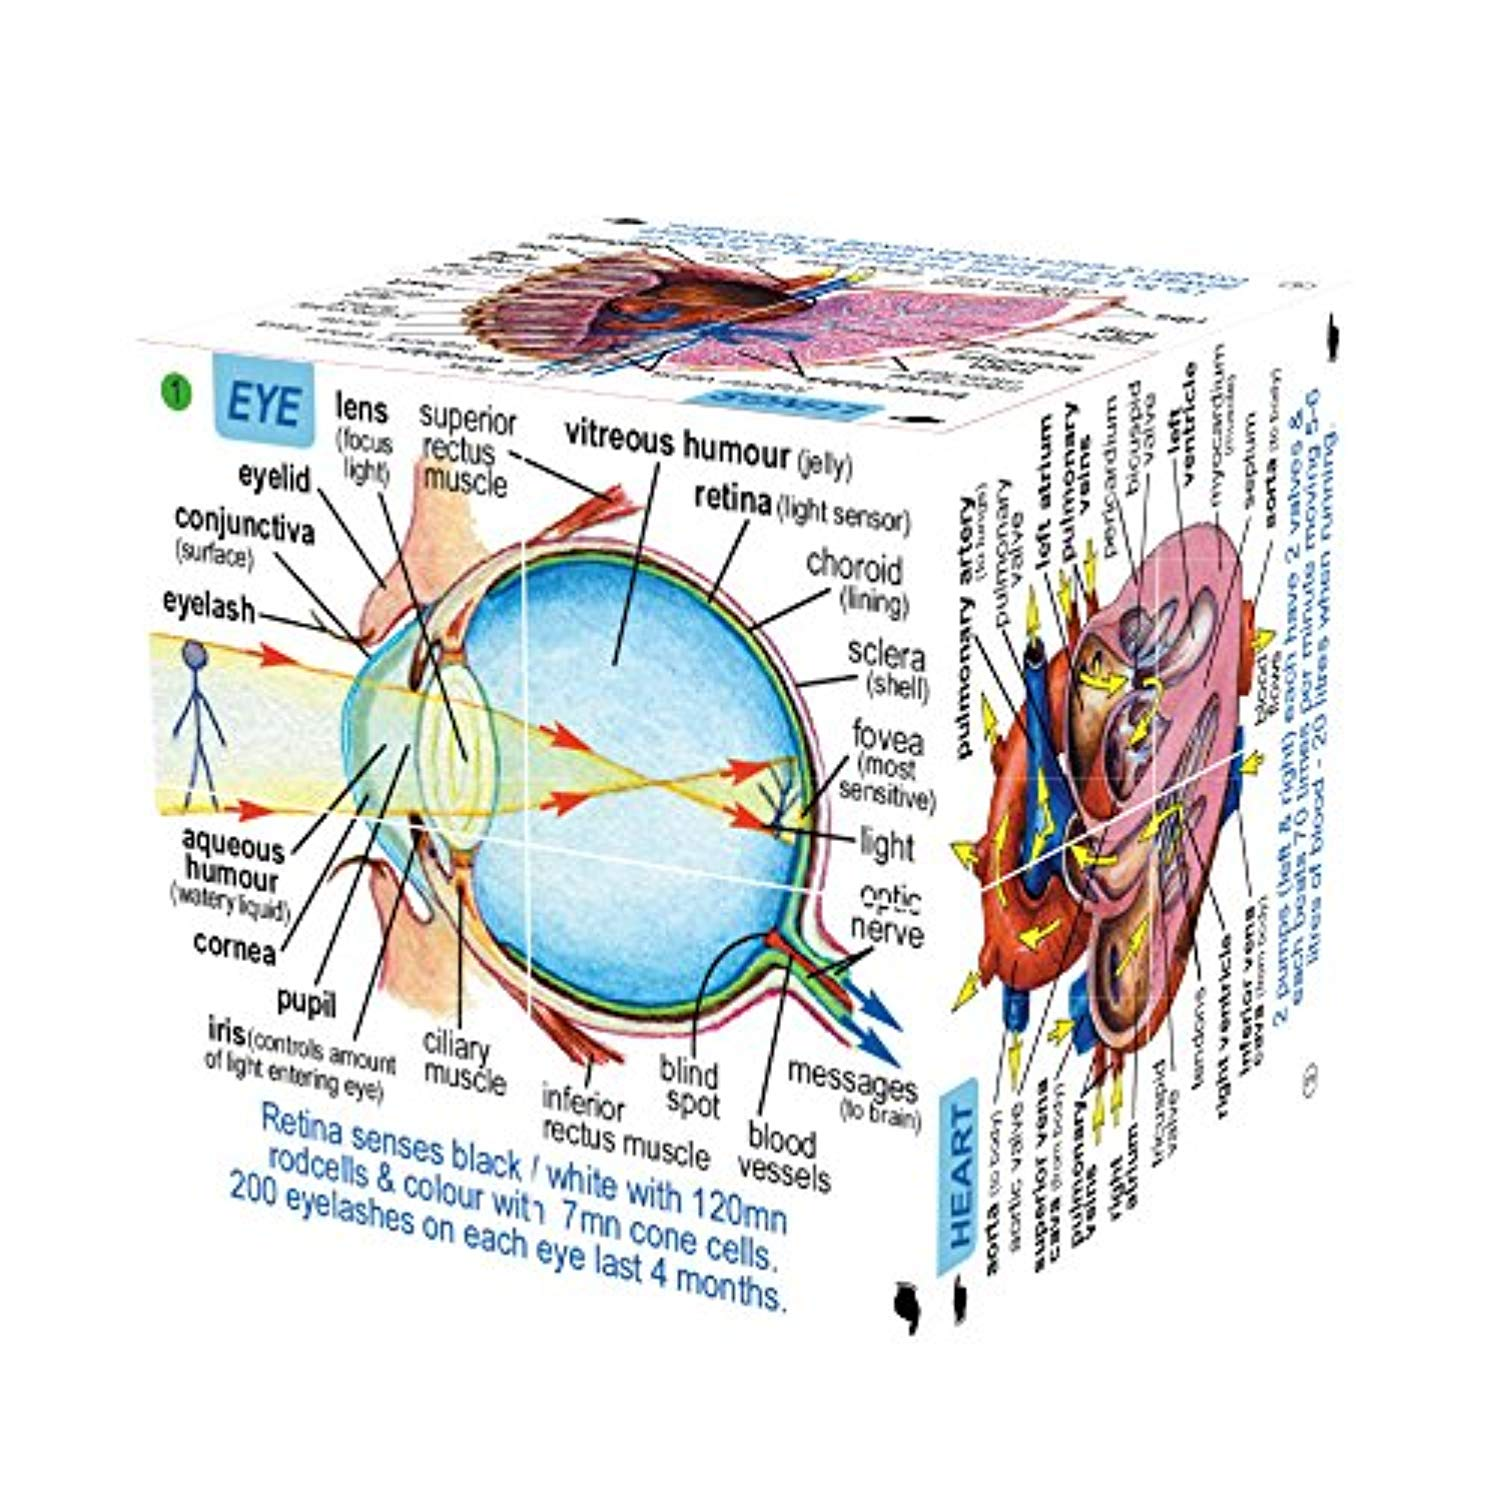 Human Body Cube Book (Whole Anatomy in just one hand)